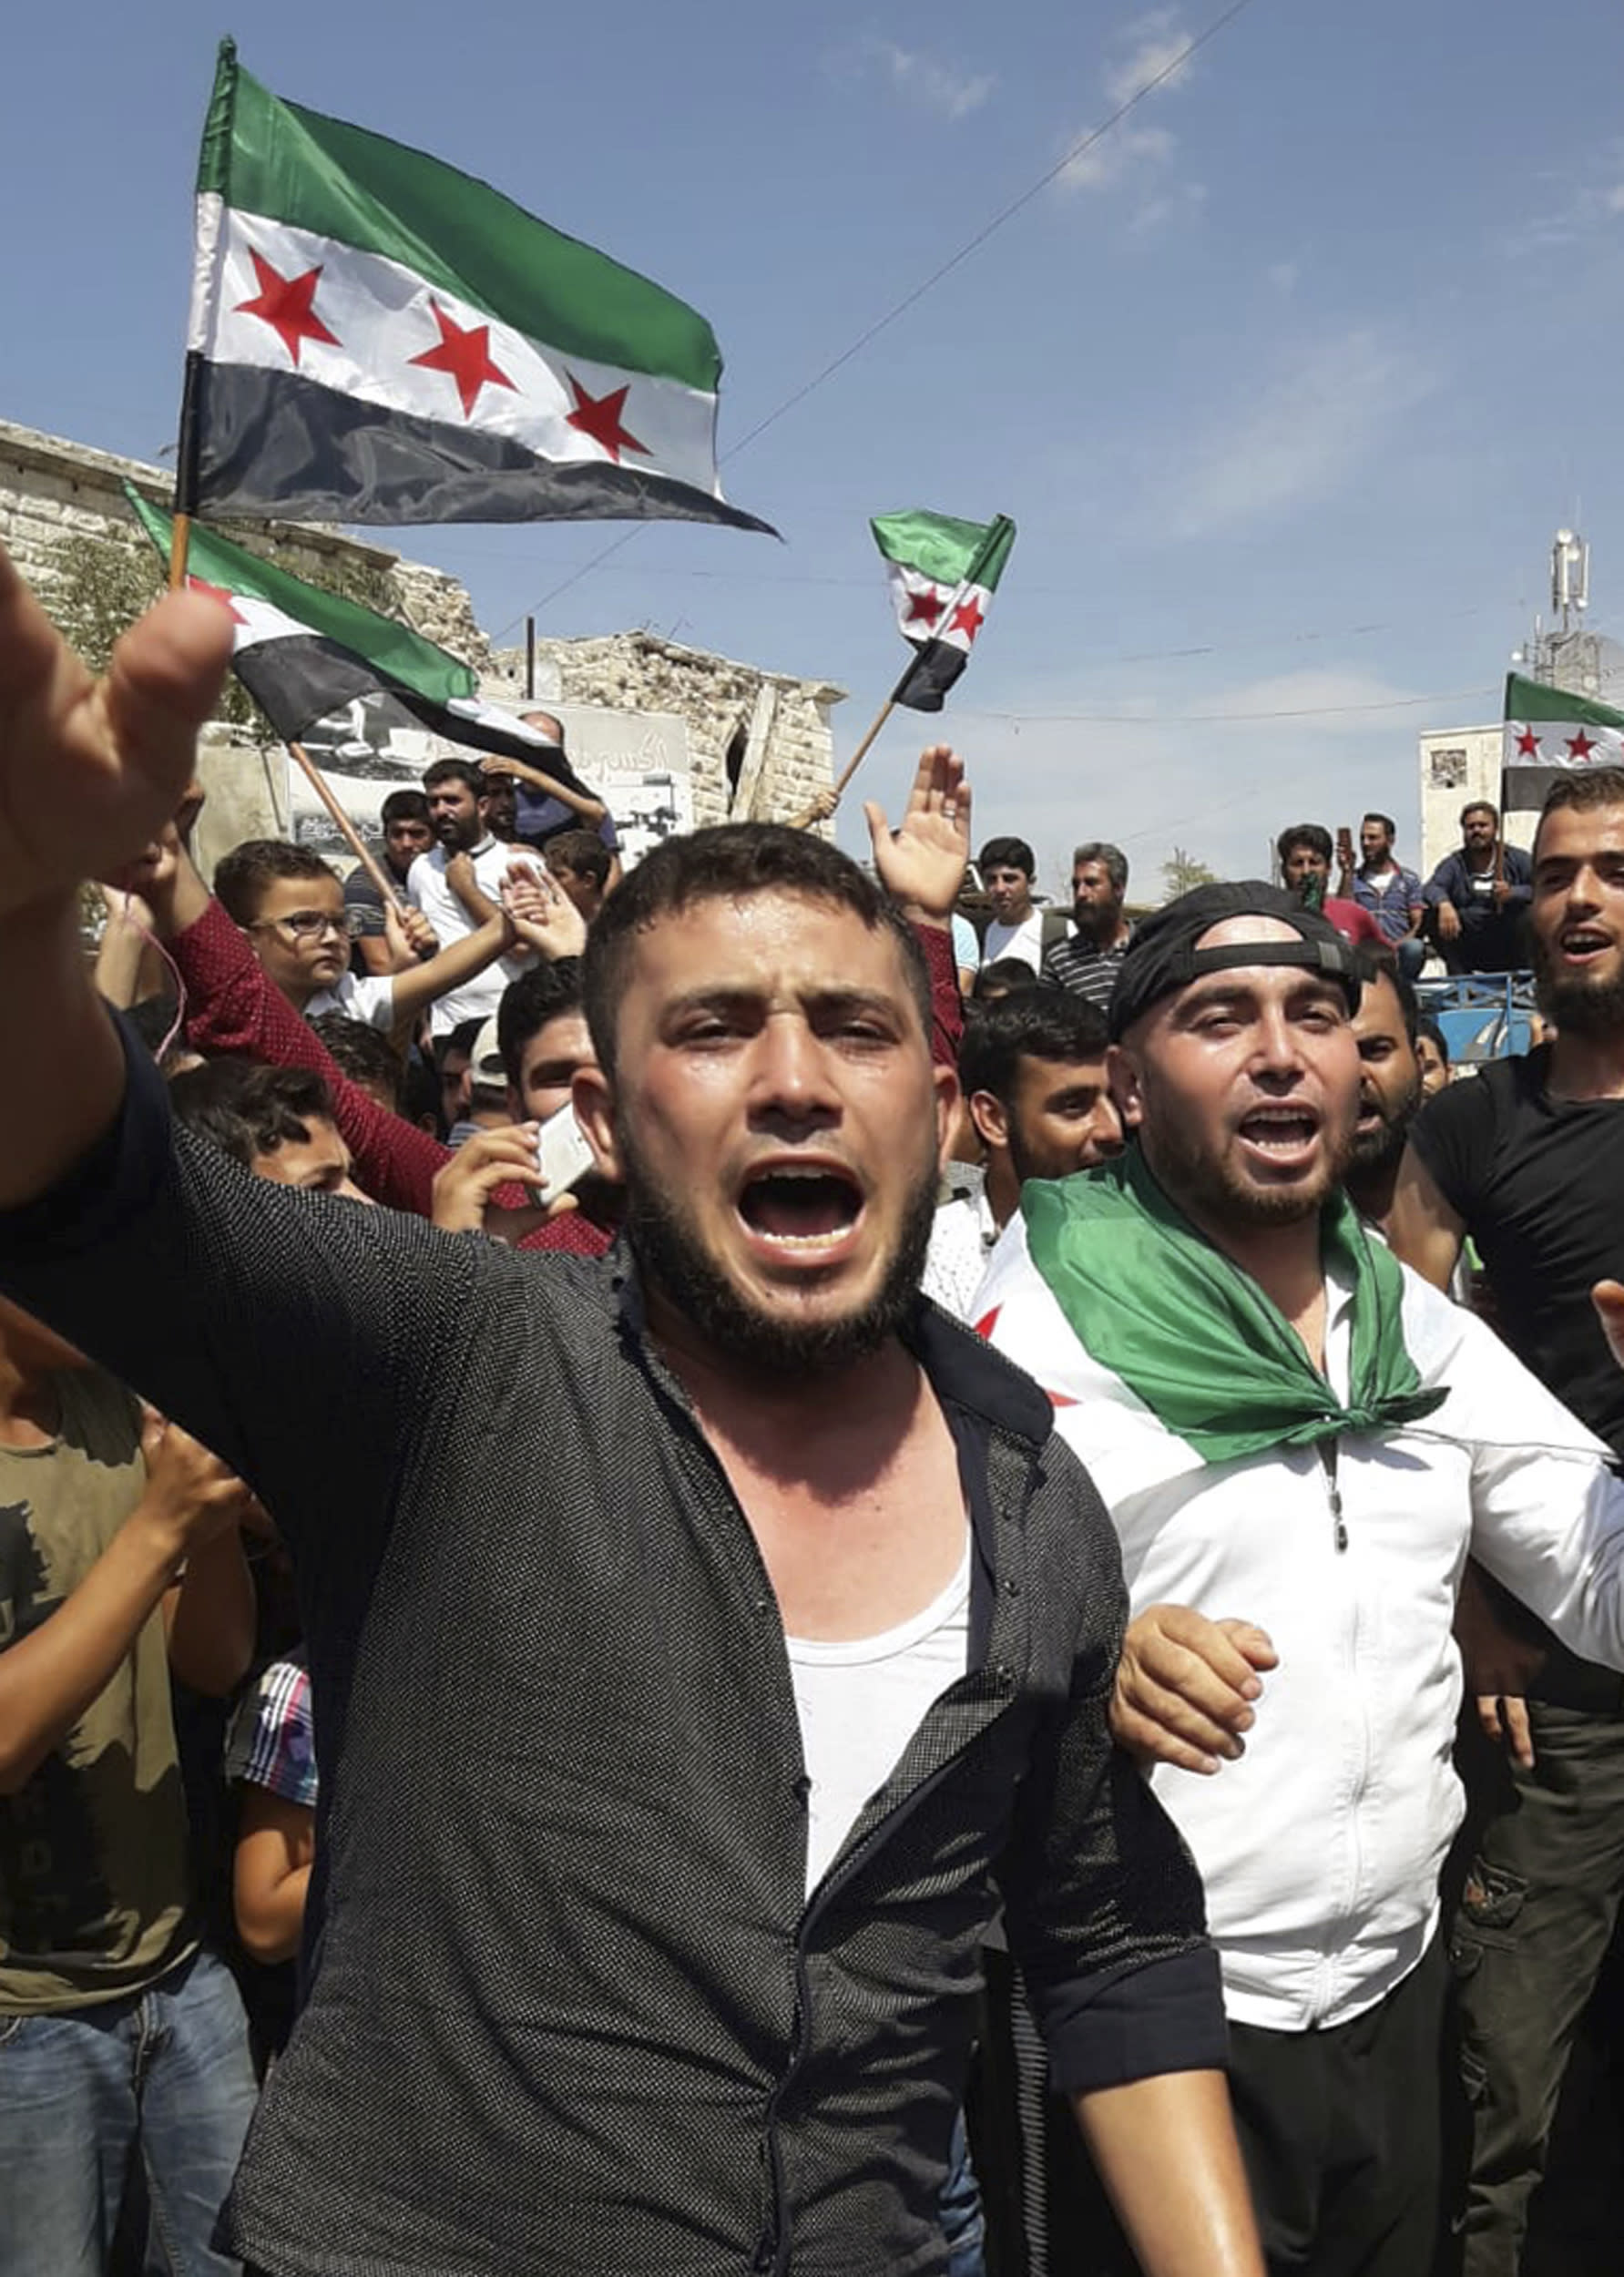 This image courtesy of Mustafa Alabdullah, an activist and resident of Idlib, shows protesters chanting as they holding Syrian revolution flags, in Harim, a town in Idlib province, Syria, Friday, Sept 7, 2018. The rallies were a day of protests against Syrian President Bashar Assad and his troops' imminent offensive against Idlib, the last bastion of rebels in Syria. The Friday rallies came as Presidents of Iran, Turkey and Russia are meeting in Tehran to discuss the war in Syria. The summit may determine whether diplomacy halts any military action in Idlib and its surrounding areas, home to more than 3 million people. Nearly half of the area's residents are already displaced from other parts of Syria and have refused to reconcile with the Syrian government. (Courtesy of Mustafa Alabdullah via AP)